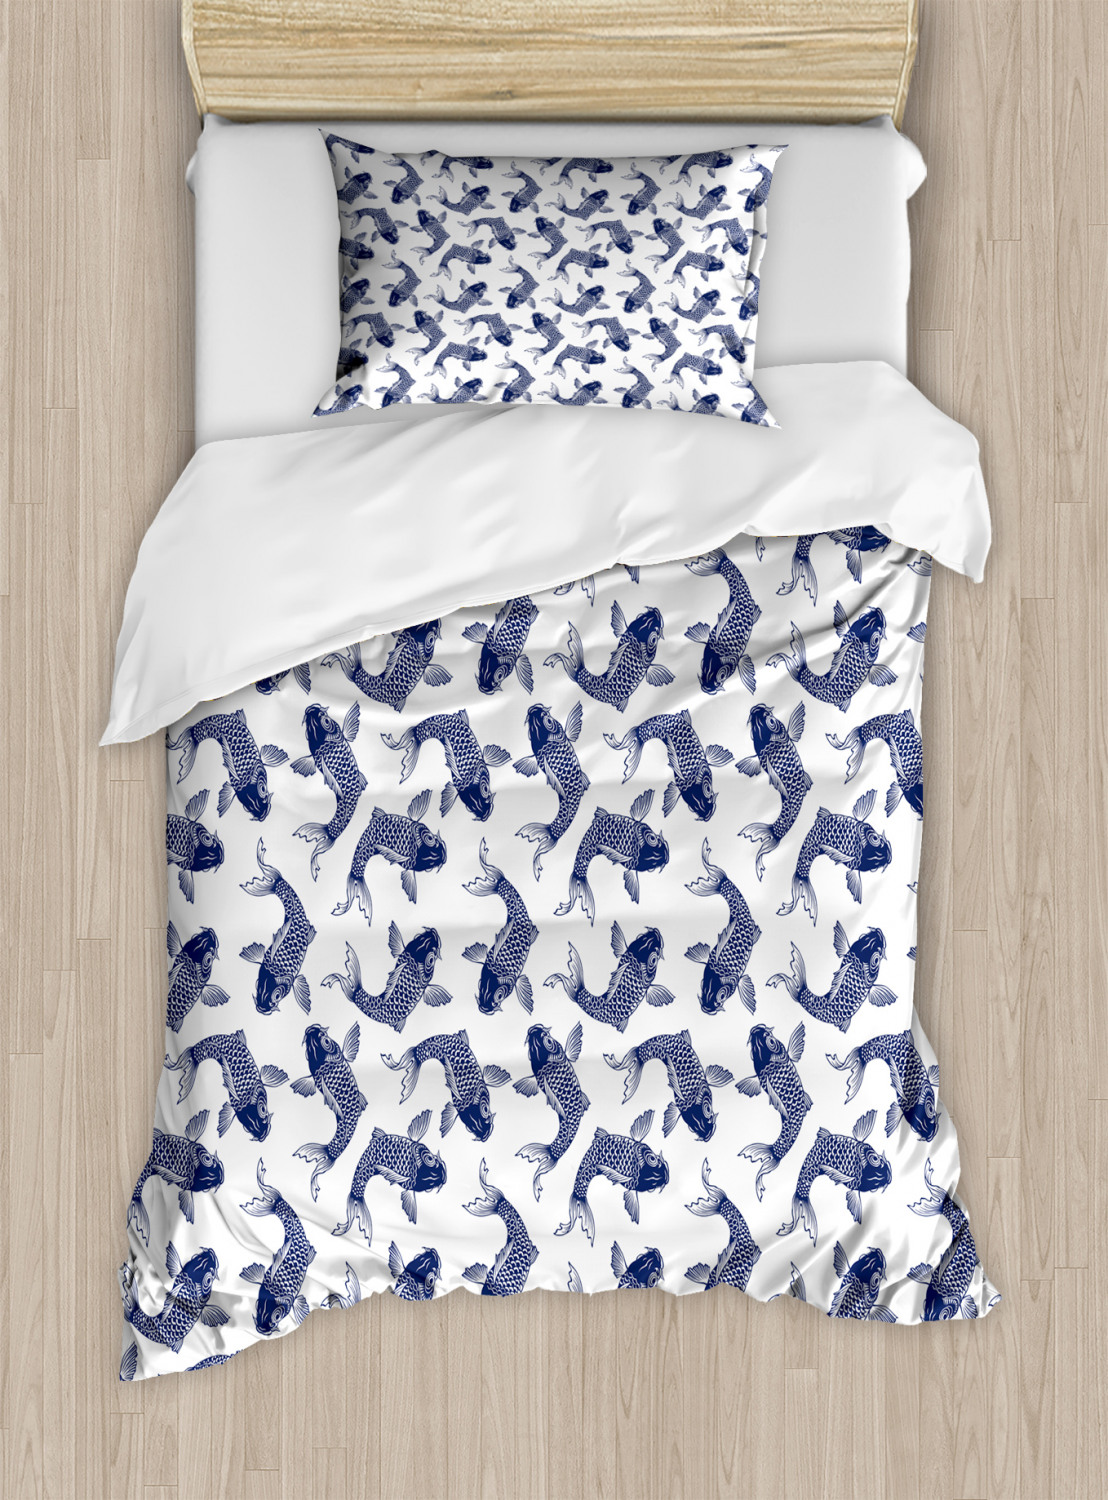 Violet Blue Lillies Marine Life Colorful Watercolor Drawing of Divine Animal Decorative 2 Piece Bedding Set with 1 Pillow Sham Twin Size Lunarable Koi Fish Duvet Cover Set